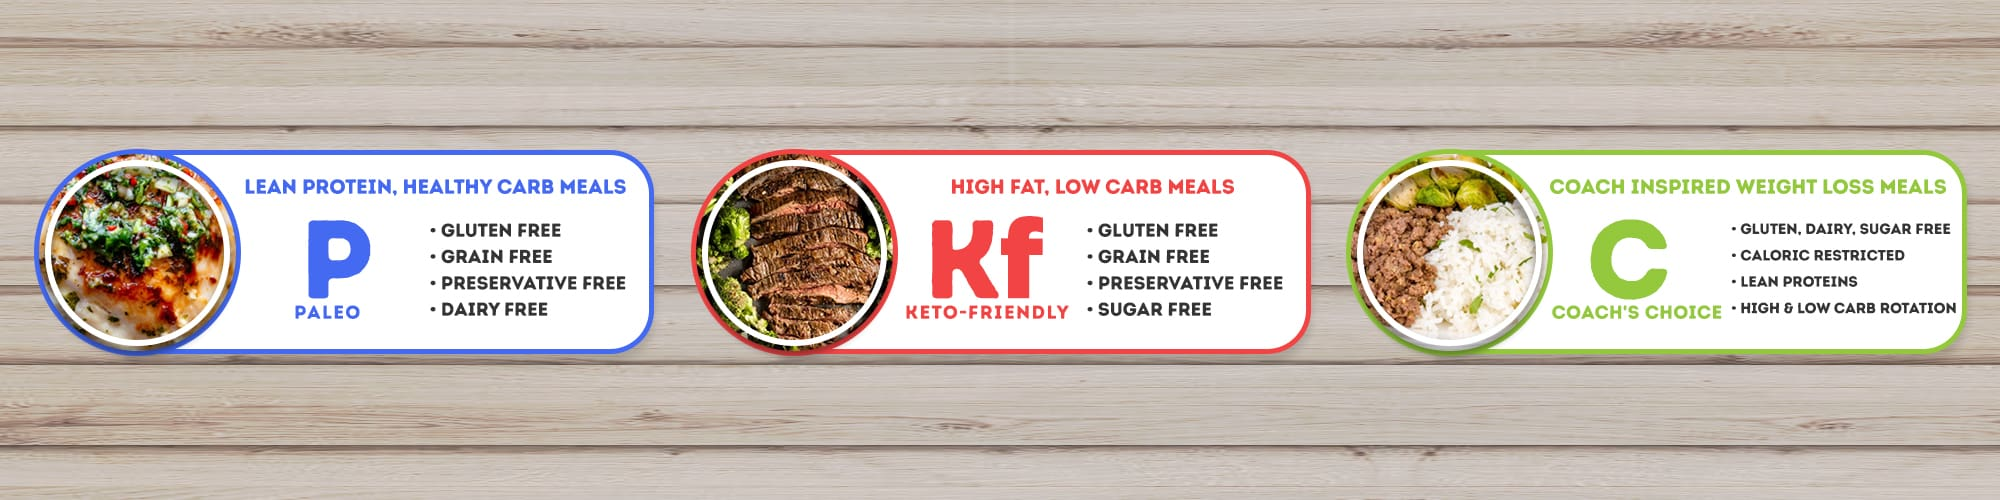 Paleo vs. Keto-friendly vs. Coach's Choice Banner